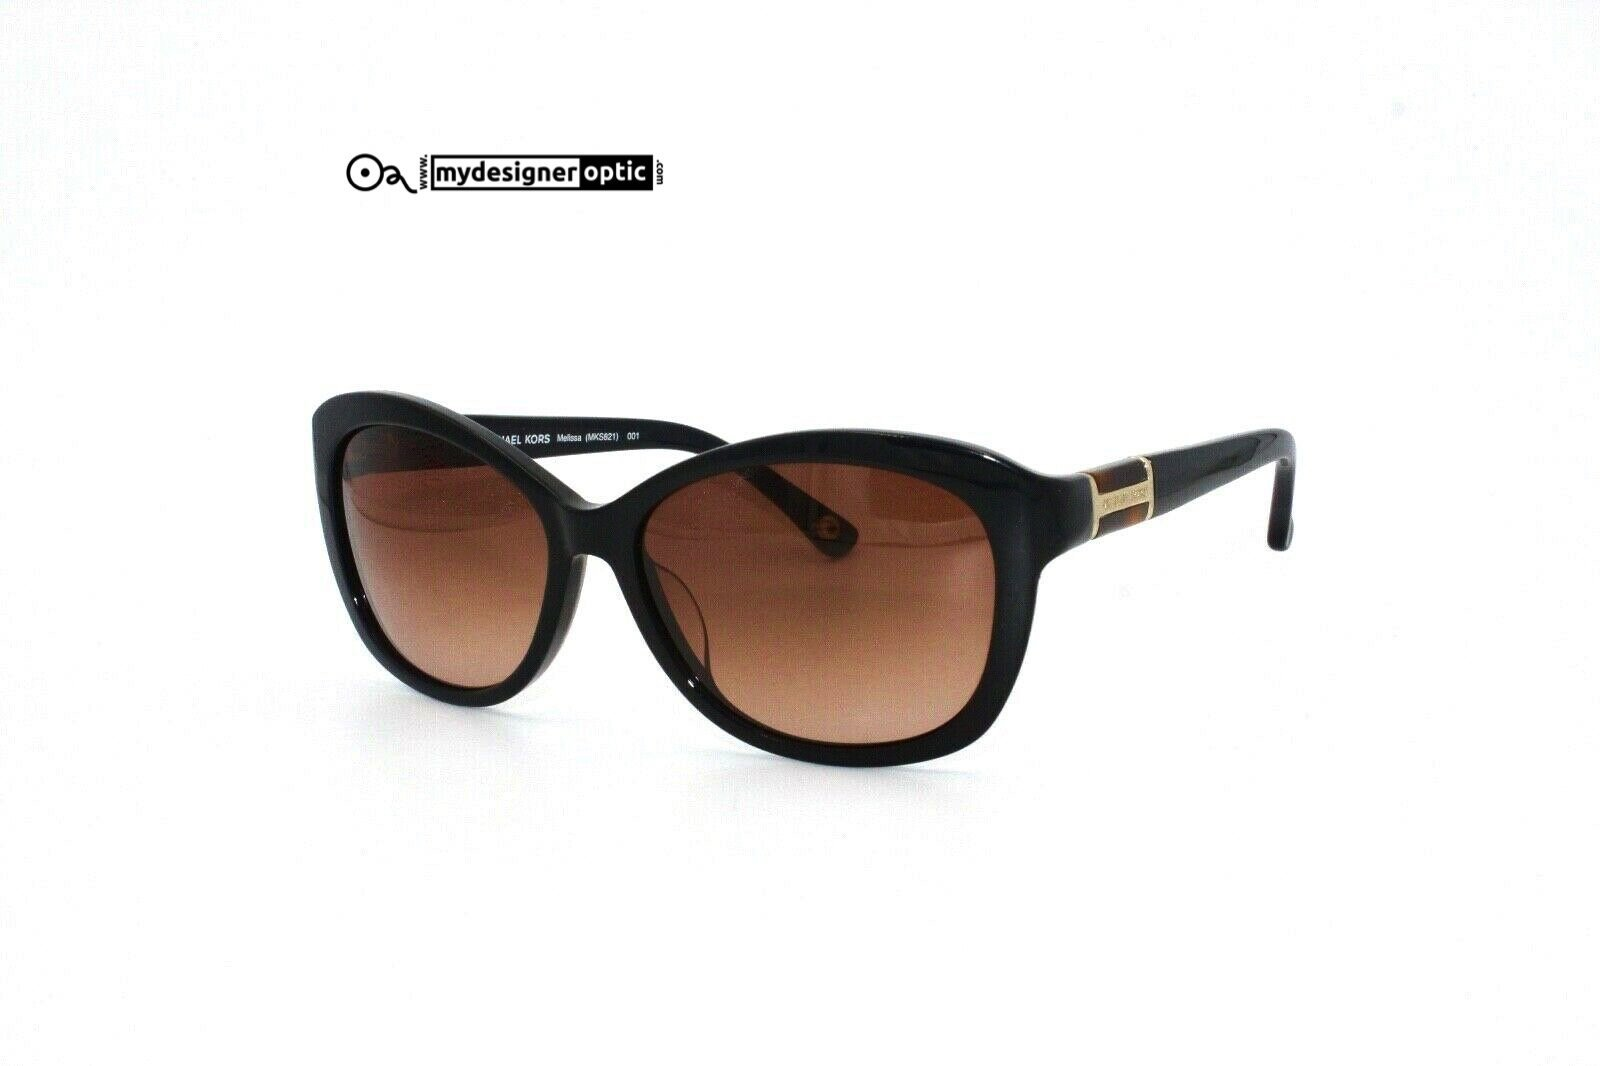 Michael Kors Sunglasses Melissa (MKS821) 001 58-16 125 Made in Italy - Mydesigneroptic